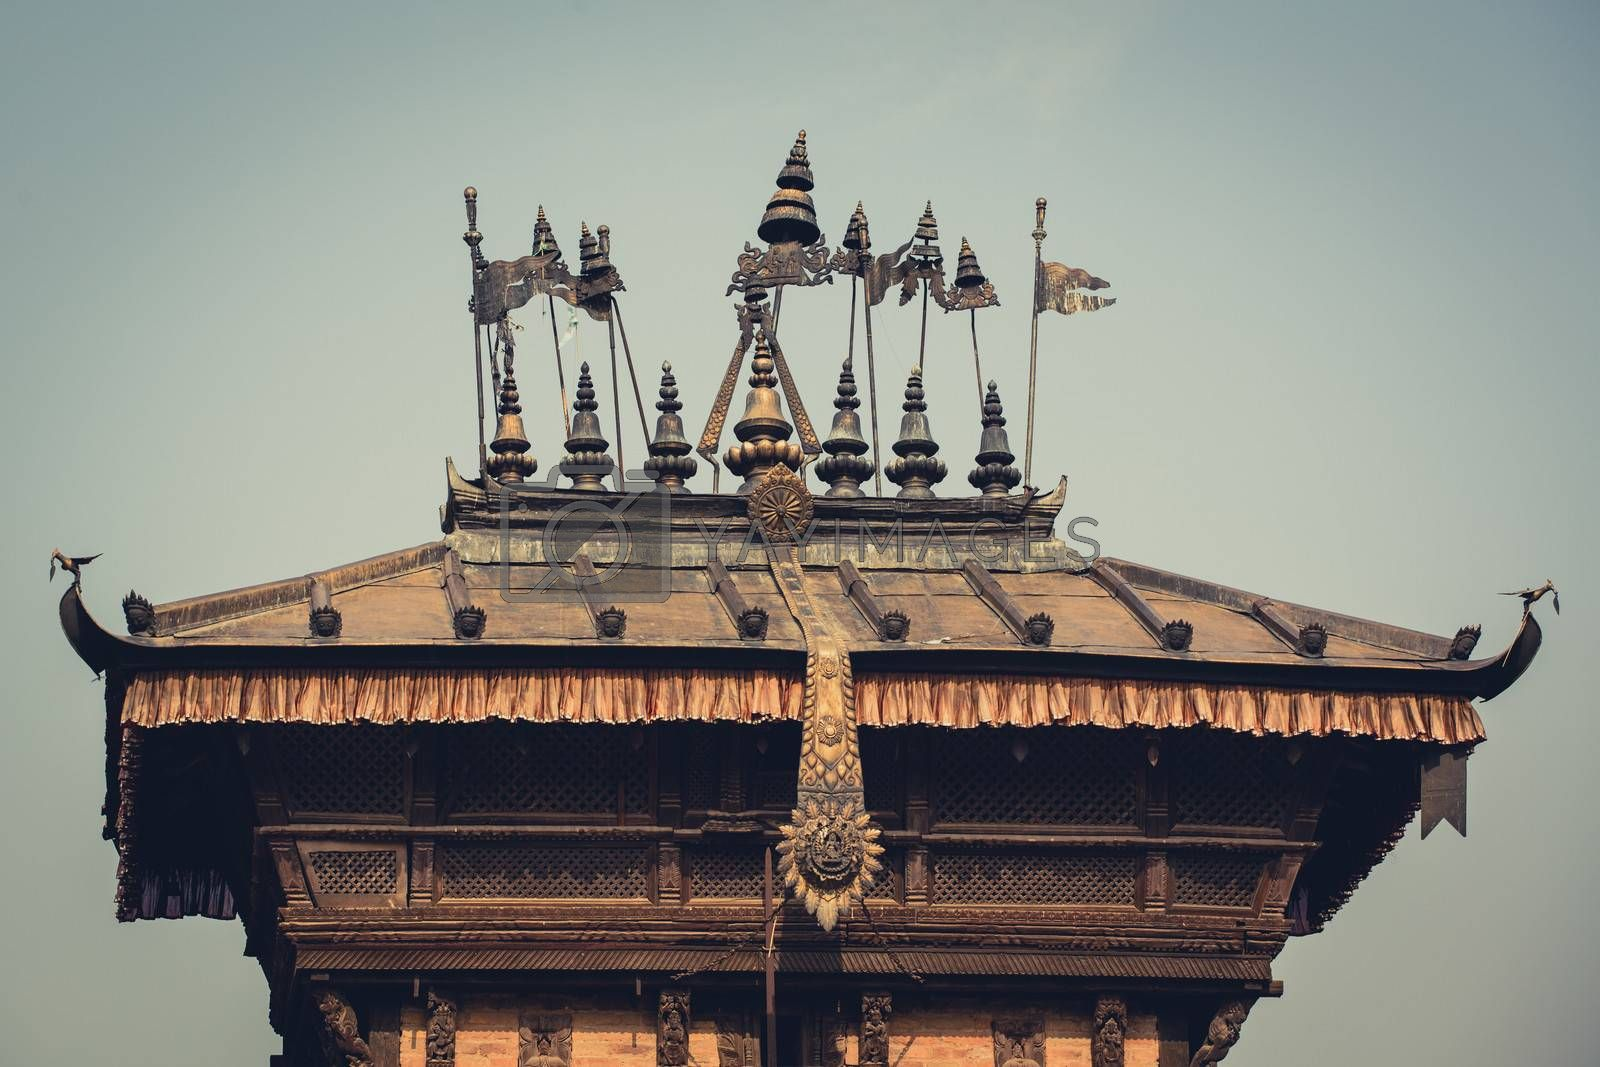 Roof of an ancient temple, Bhaktapur, Nepal